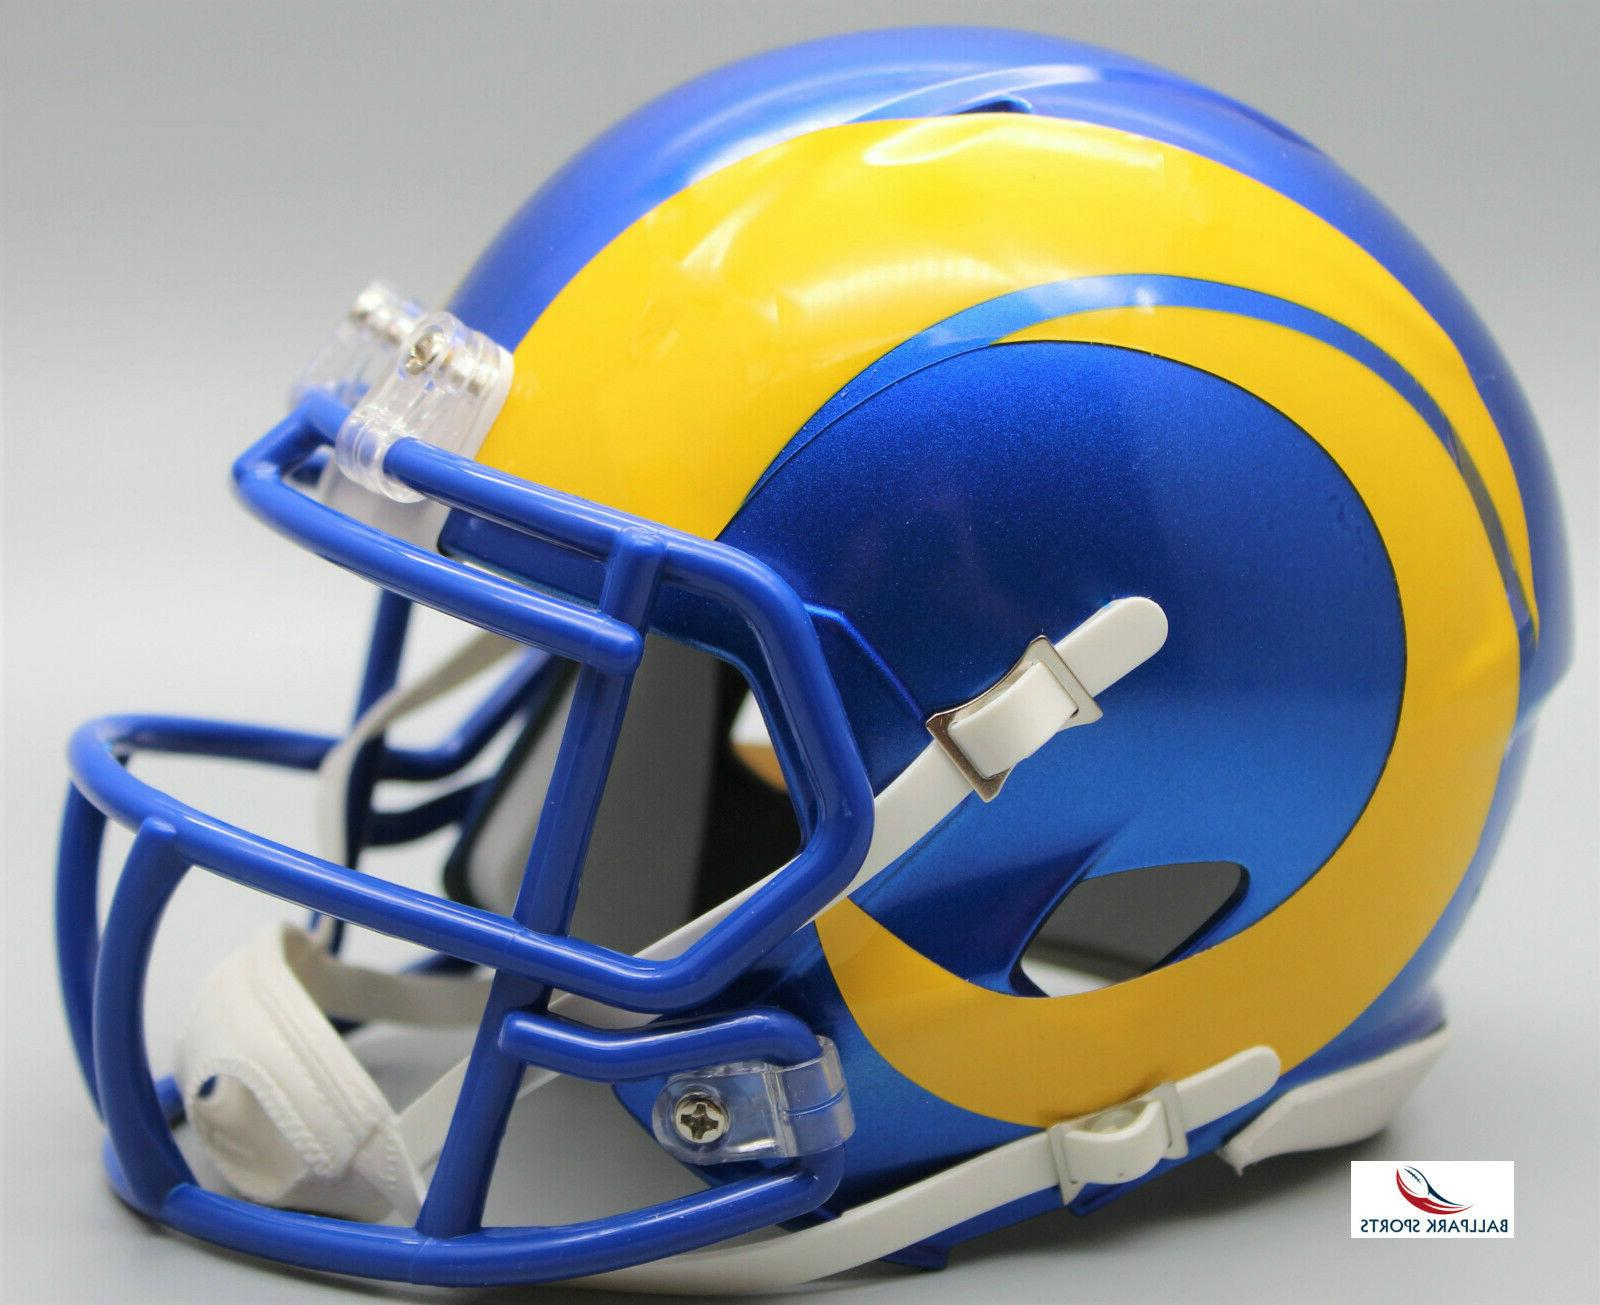 los angeles rams speed mini helmet 2020